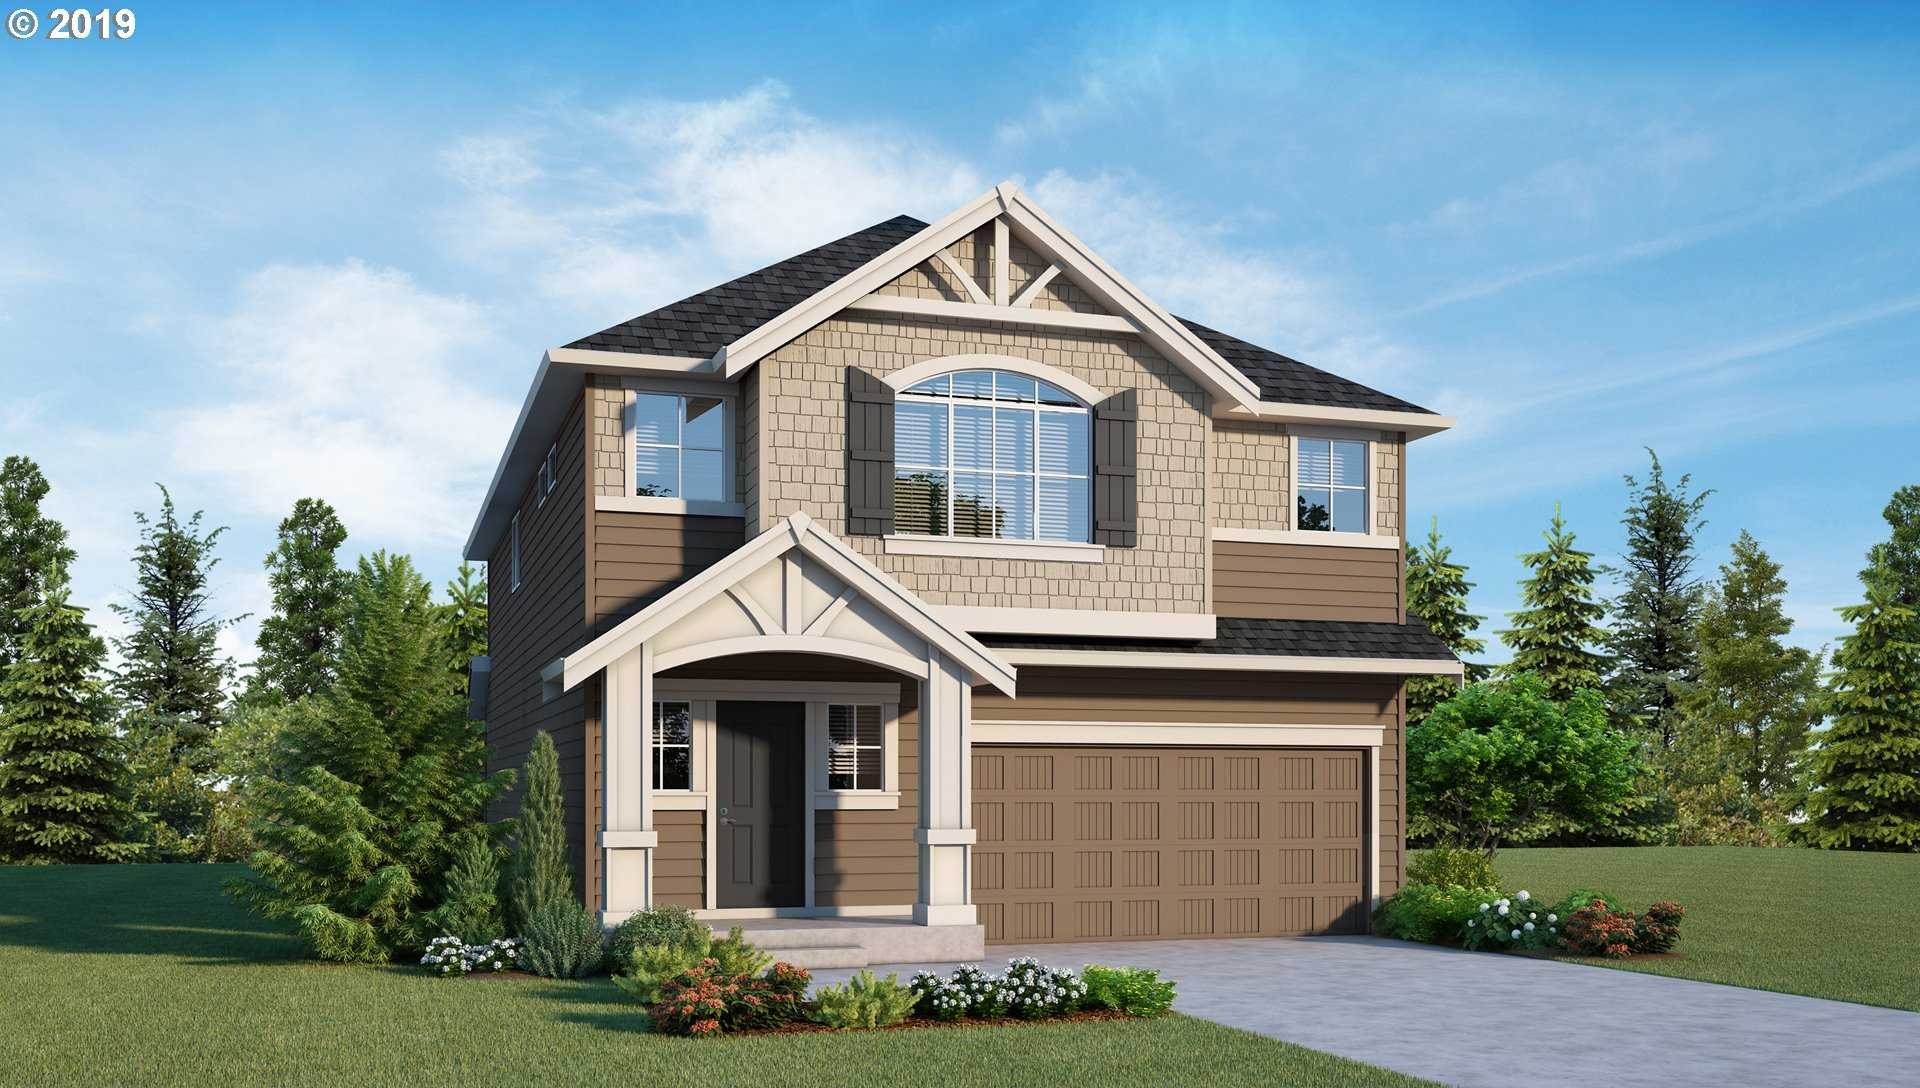 $469,995 - 5Br/3Ba -  for Sale in Trails At Rock Creek, Happy Valley